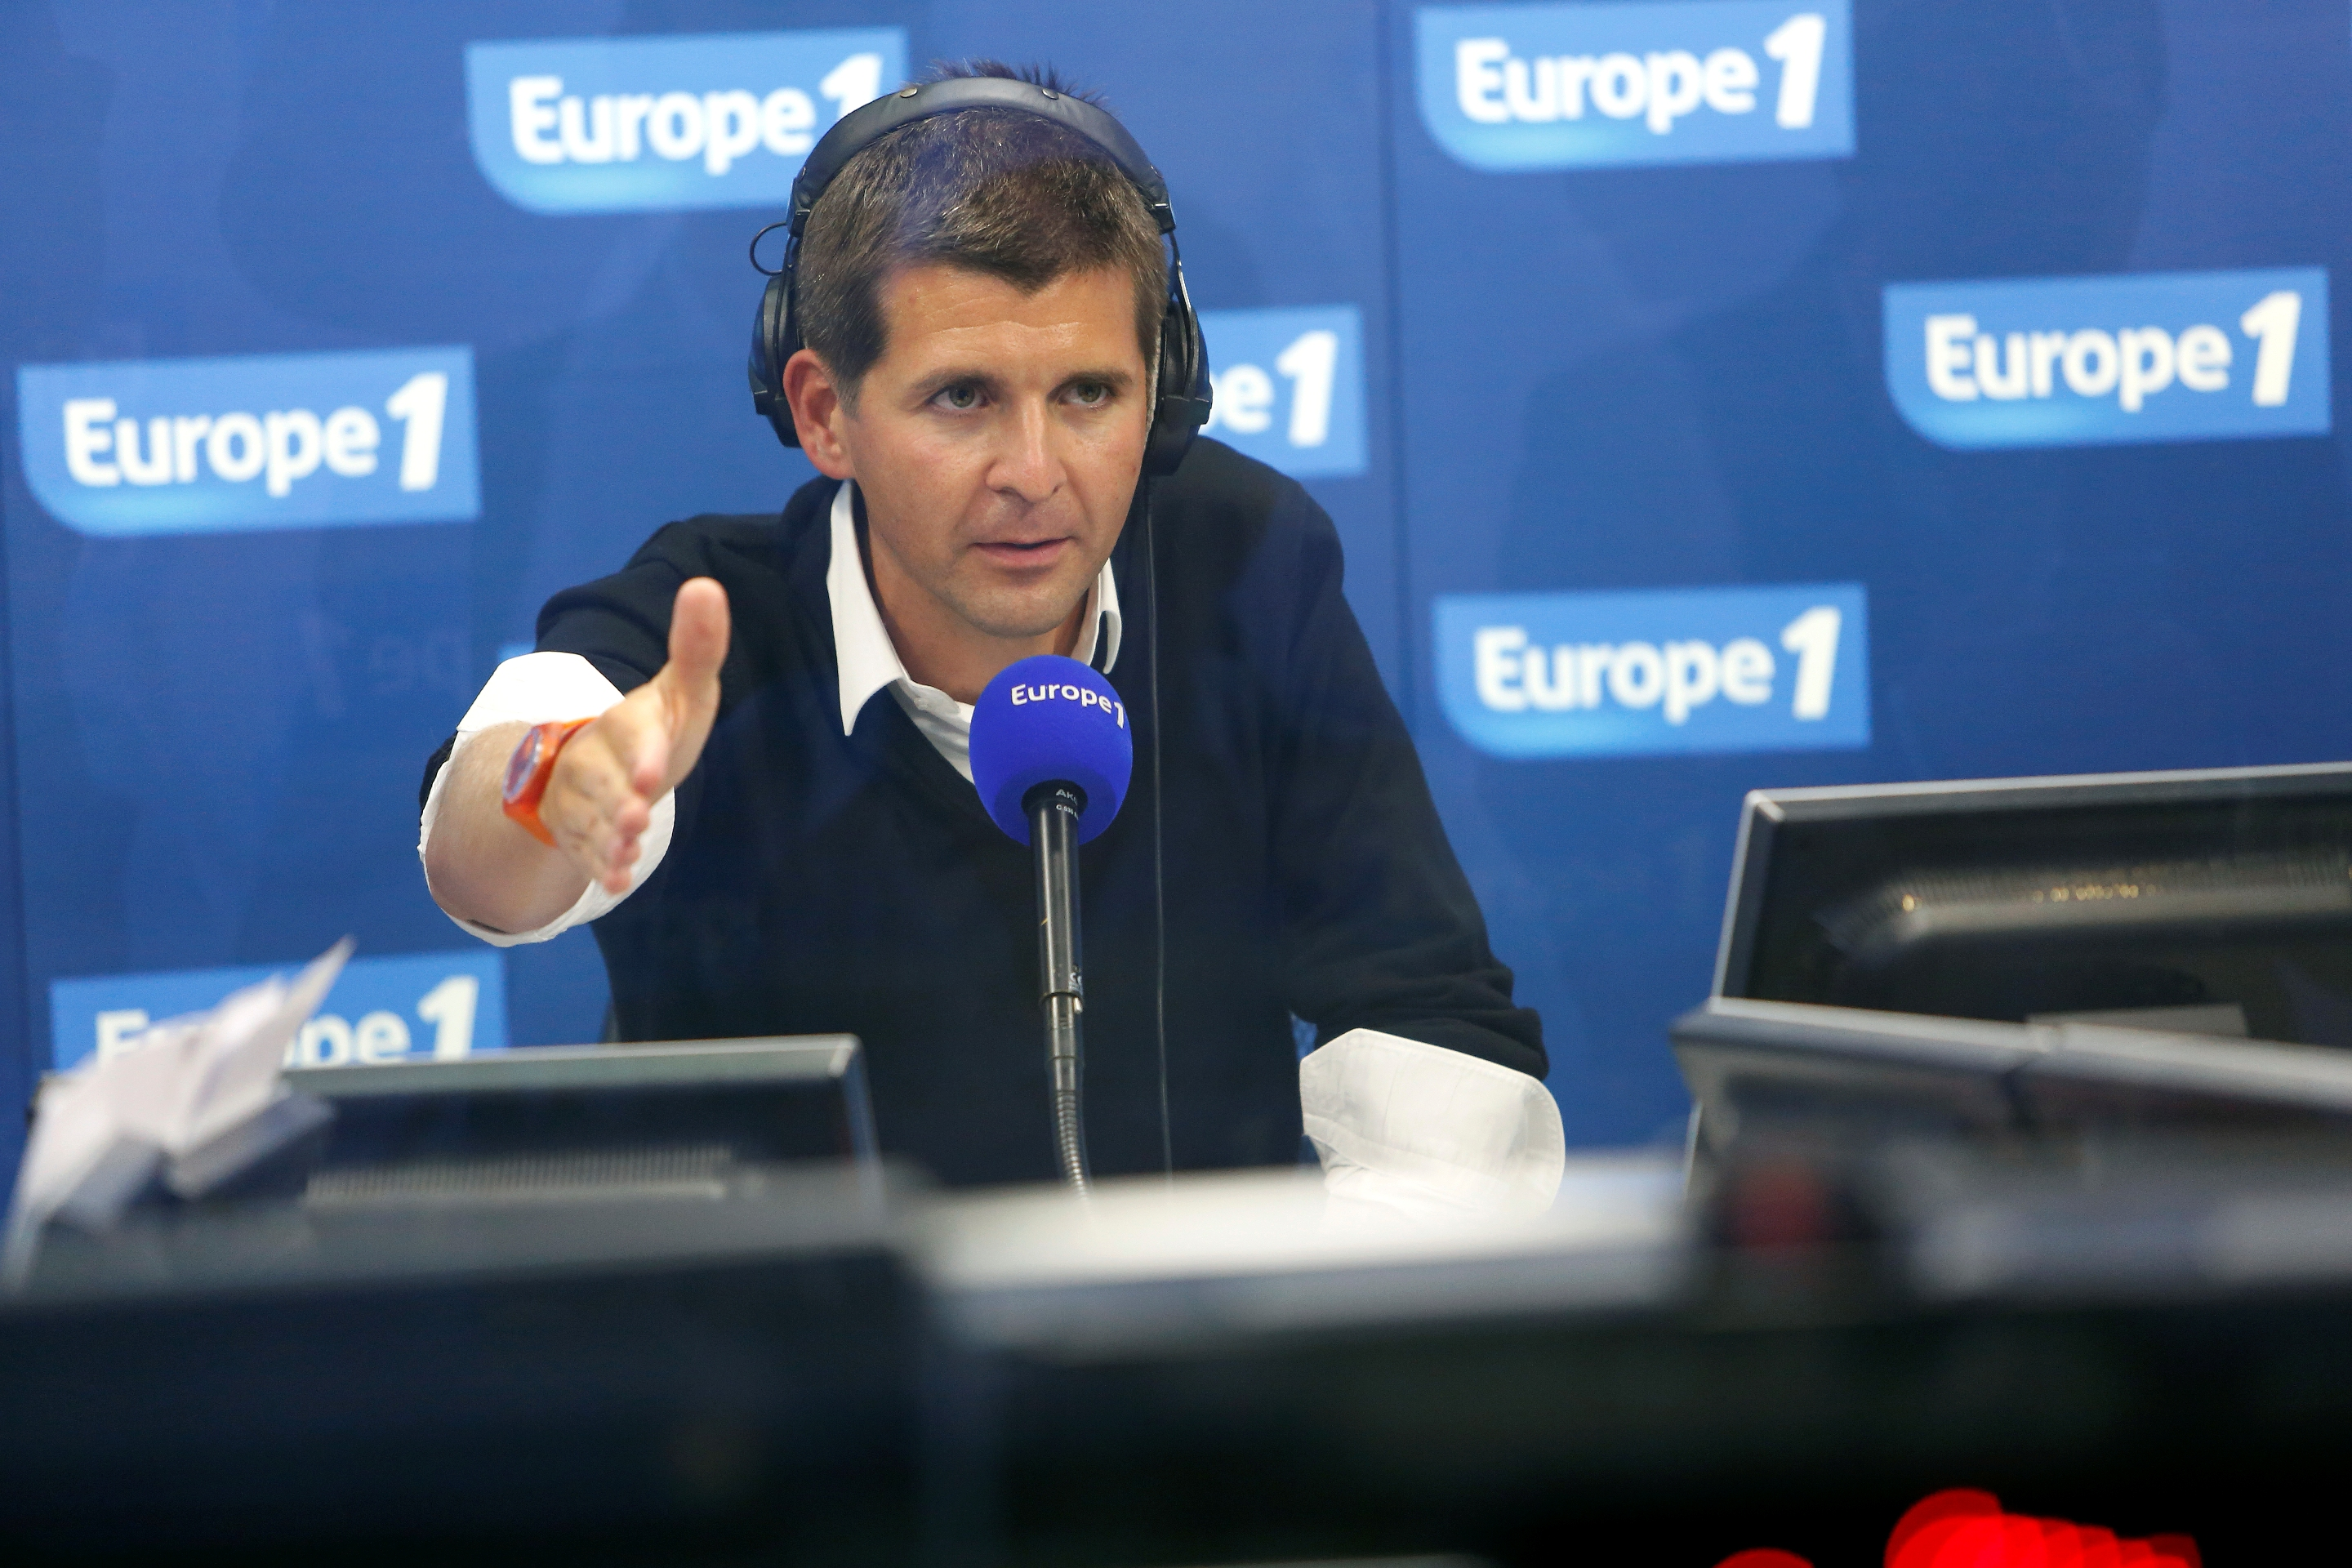 Thomas Sotto © Julien Lutt - Capa Pictures - Europe 1